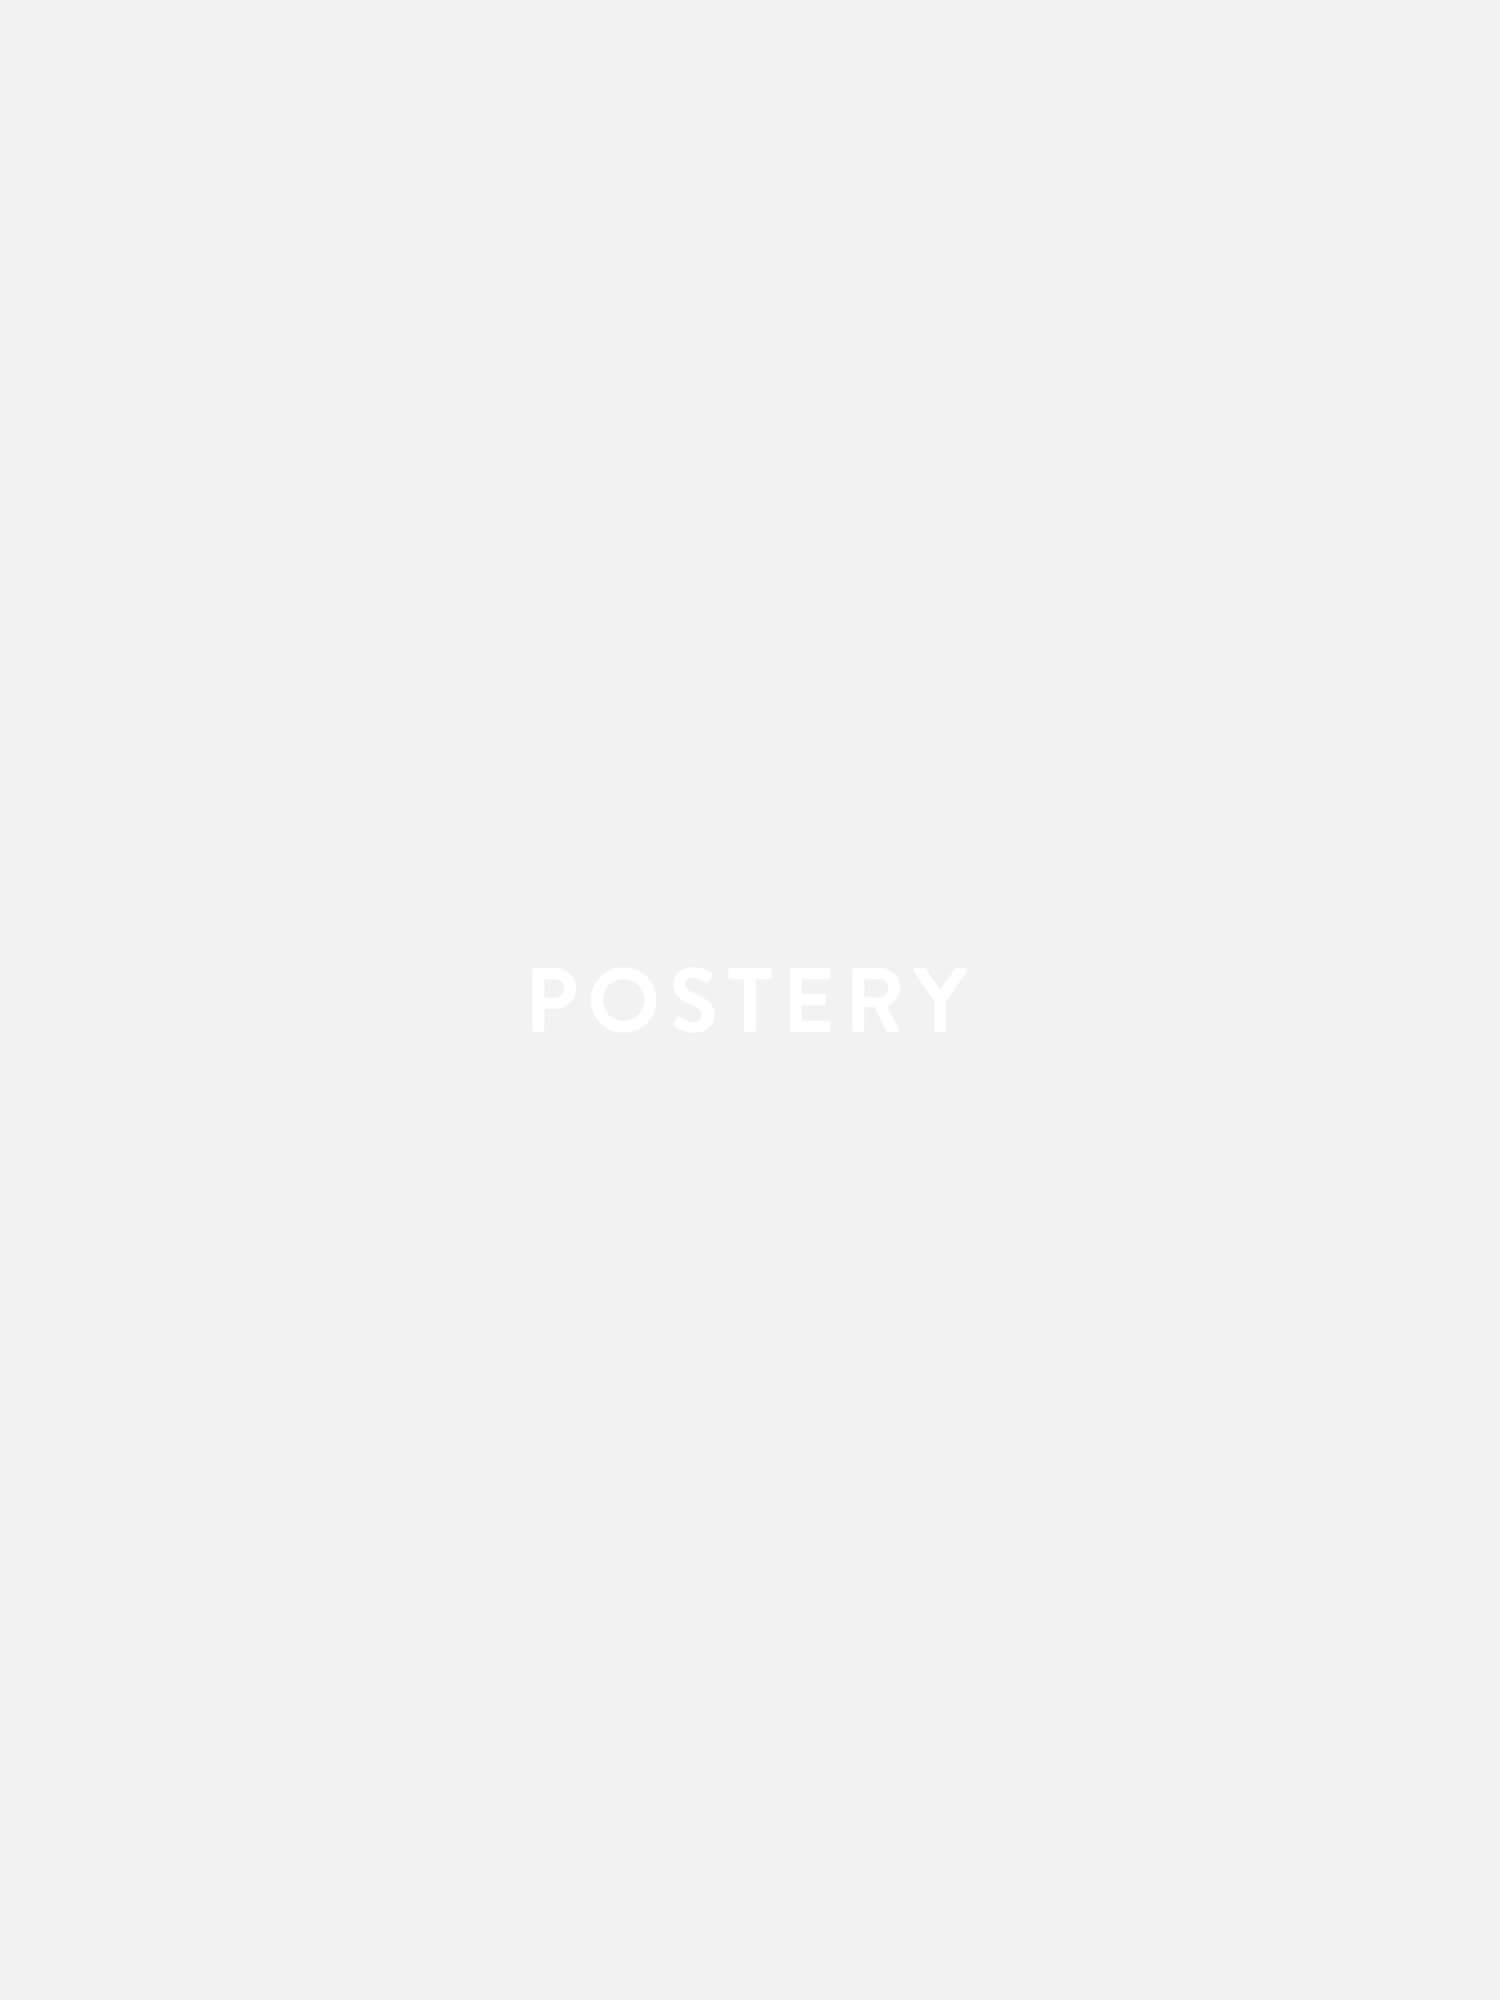 Boat by Island Poster